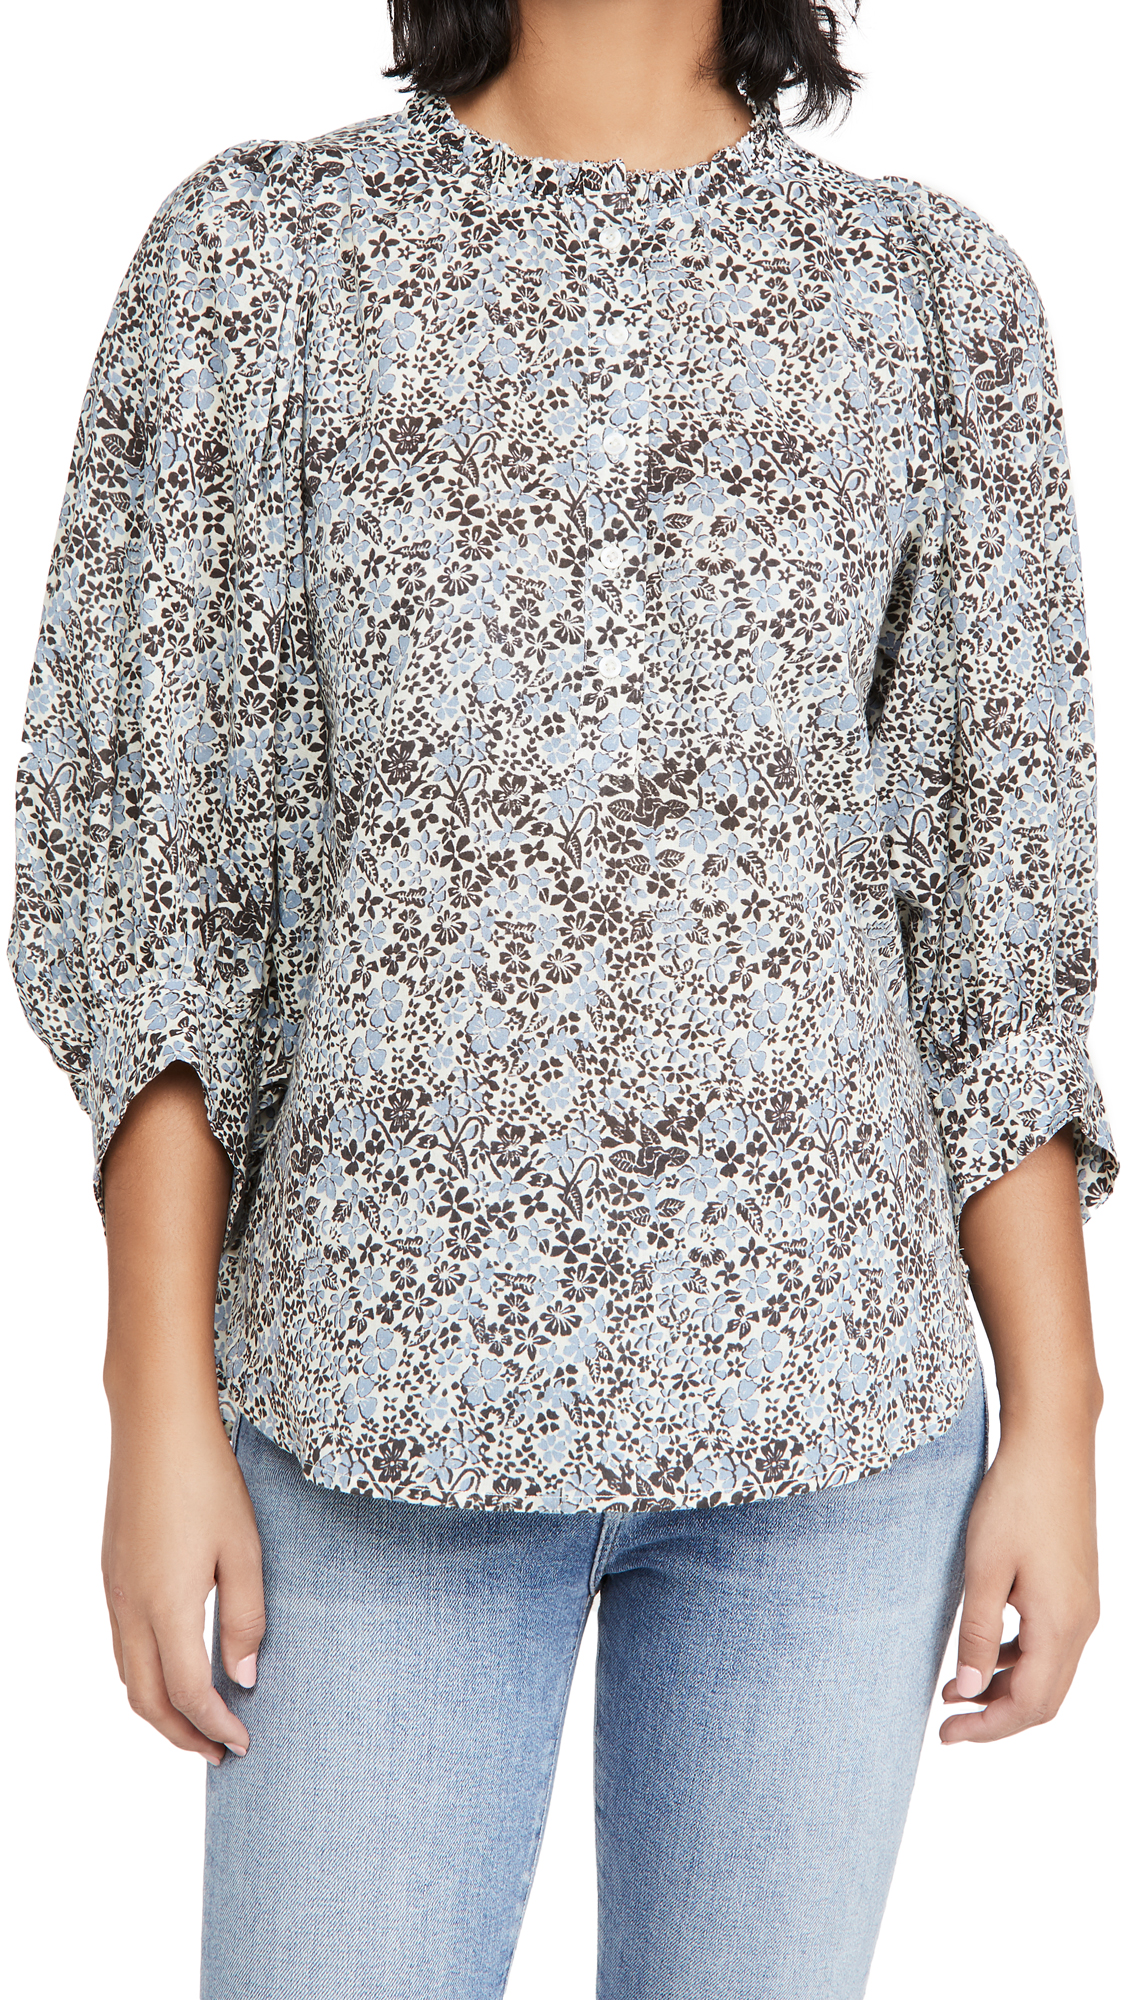 Apiece Apart Everlasting Blouse